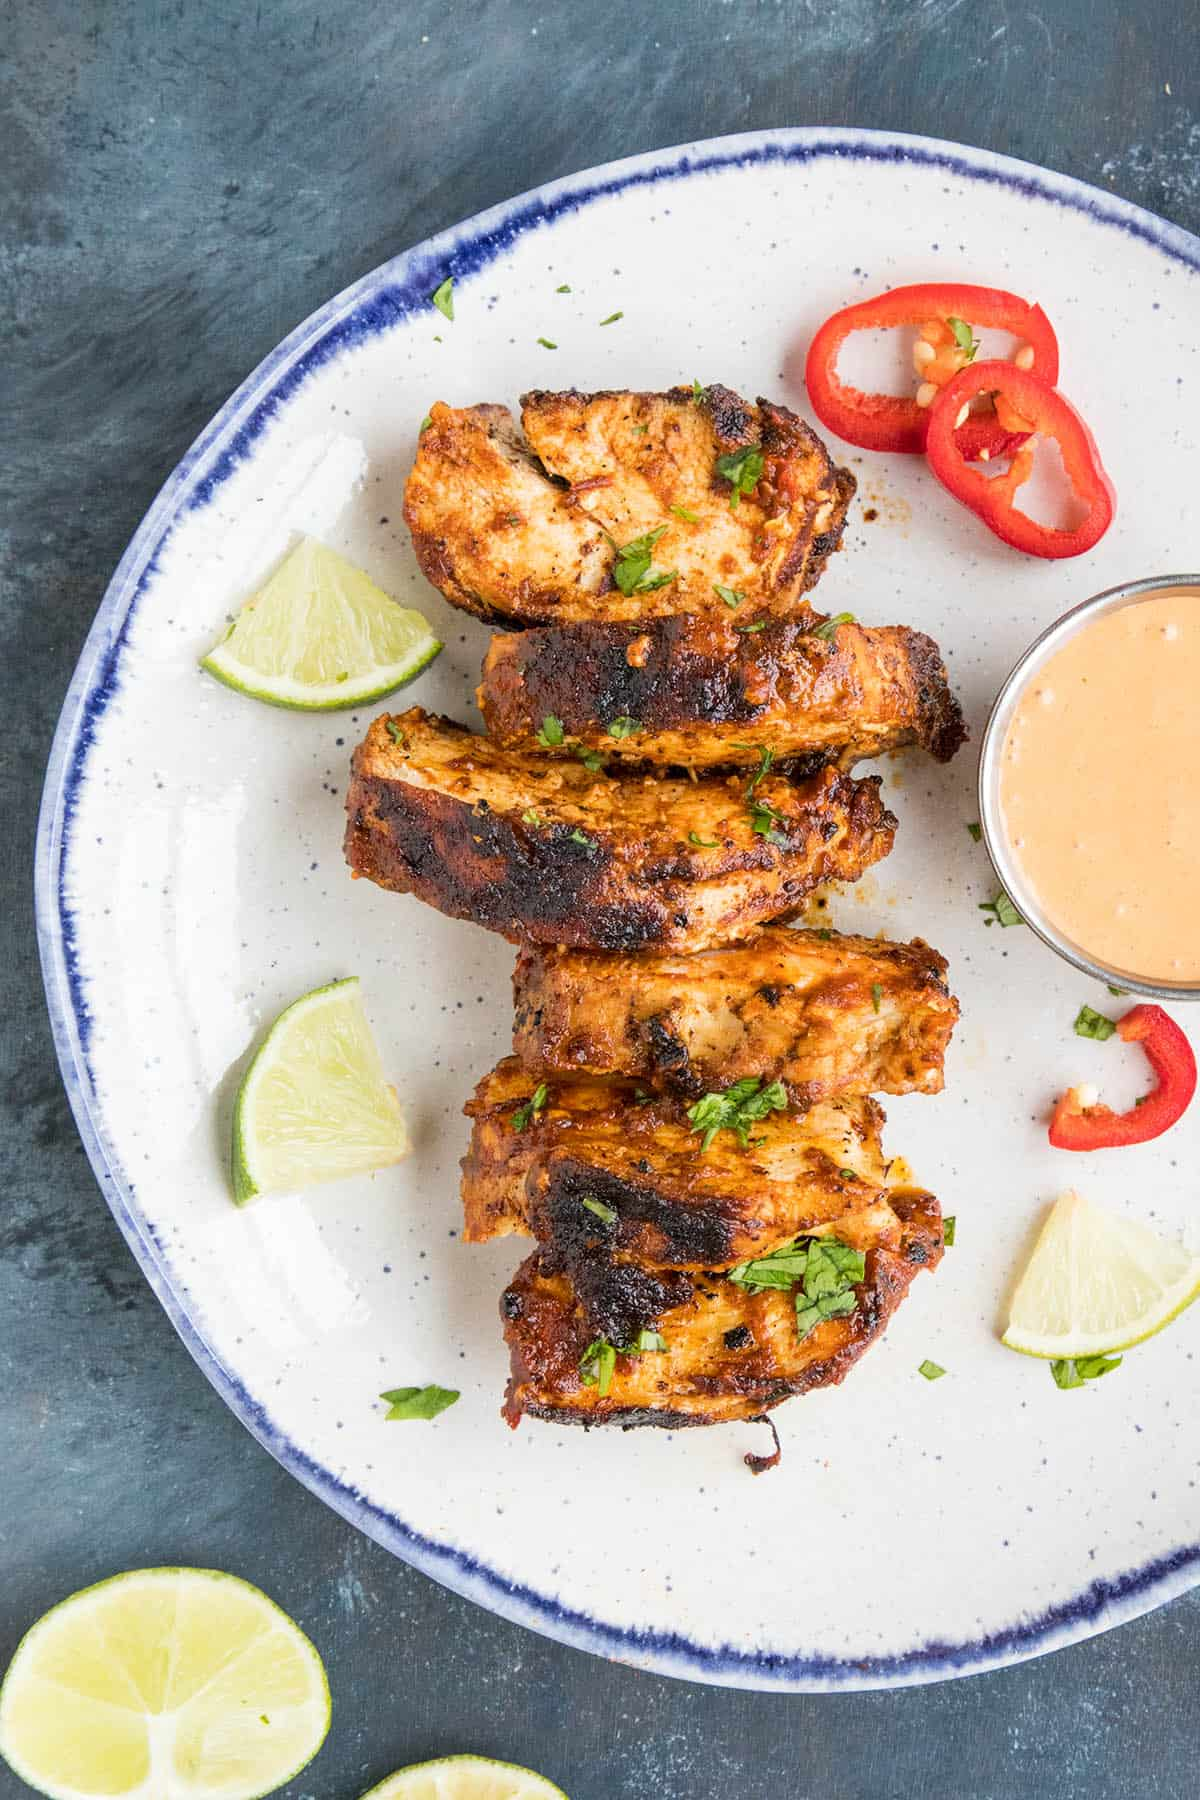 Chipotle Chicken Recipe - Very Easy to Make, and Big on Flavor